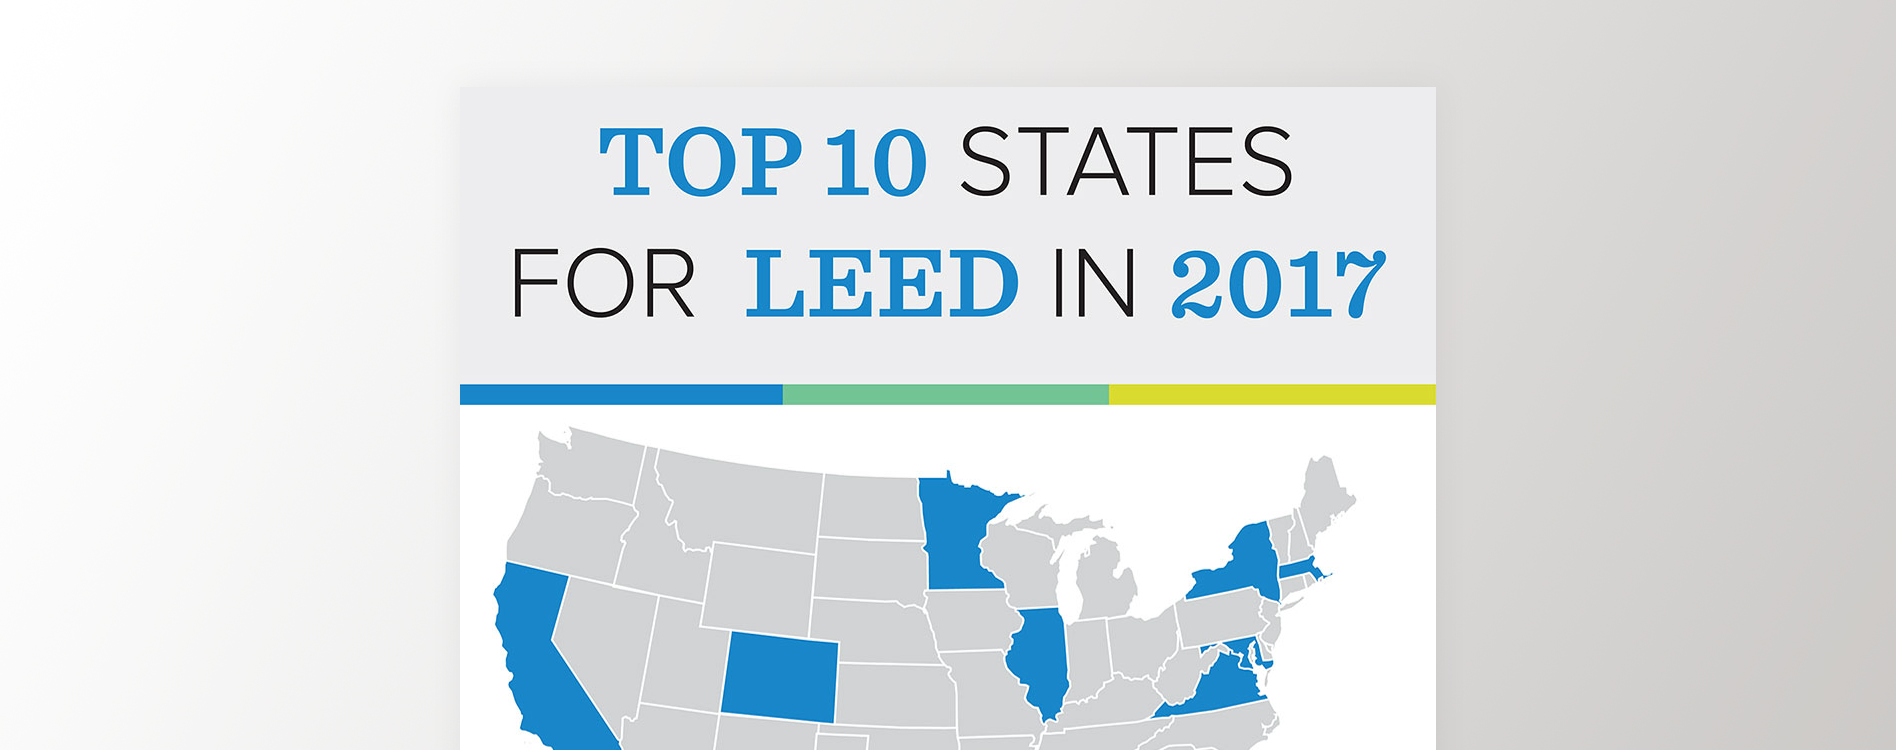 Sharing the story of the Top 10 States for LEED